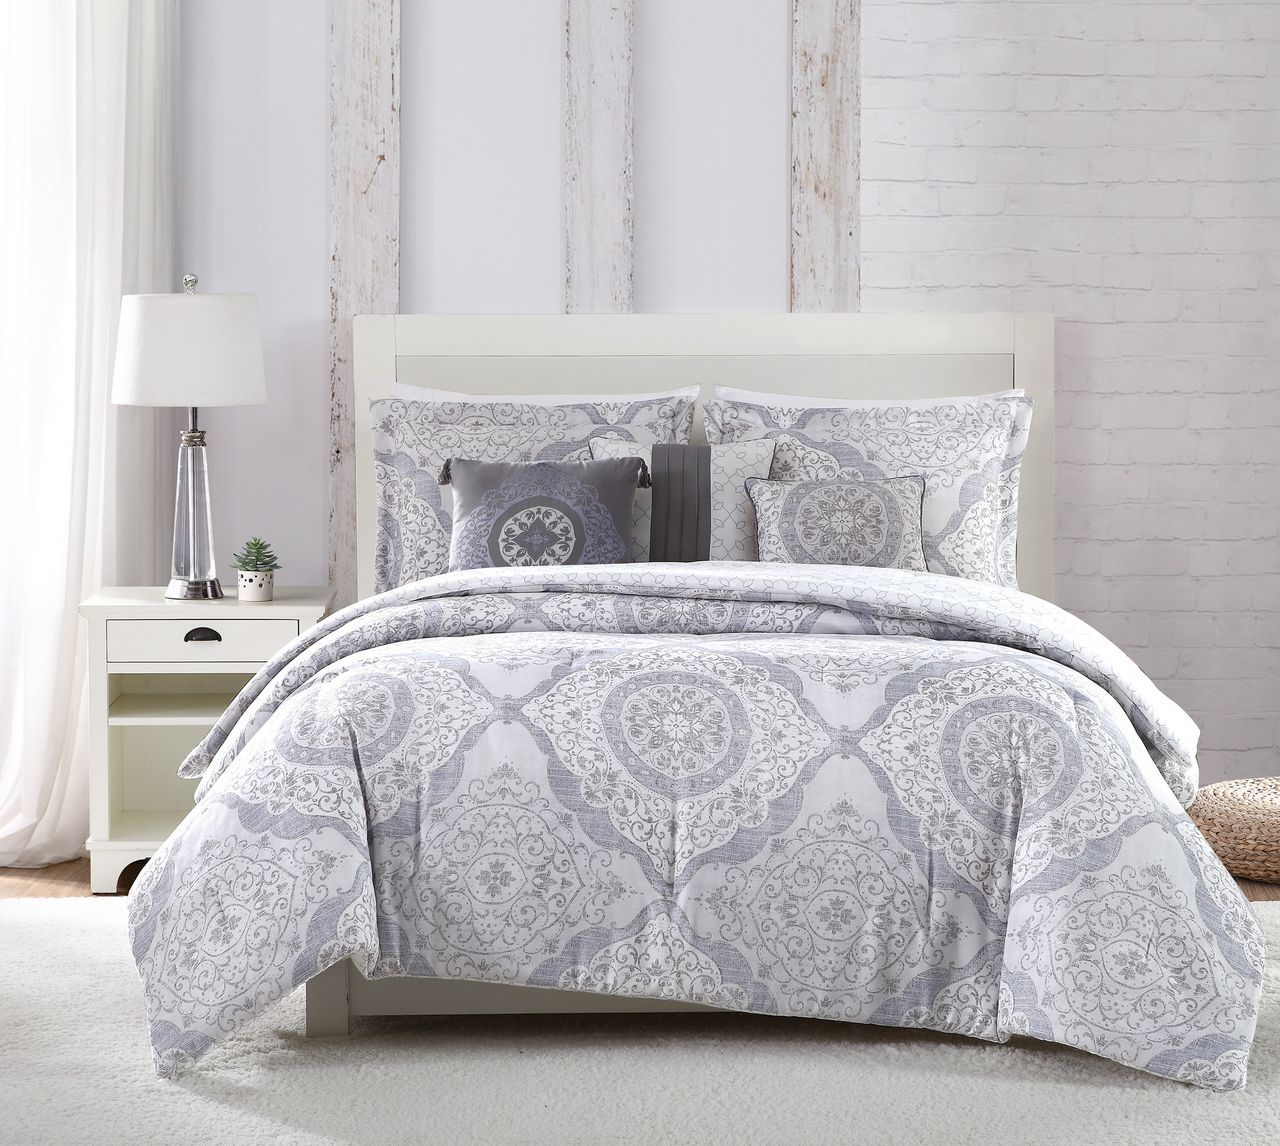 white and actually daniel keep sleep hair bedding all these your on beautiful ones silk with help we something likes pillows the nice bed because pillowcases gray for use it